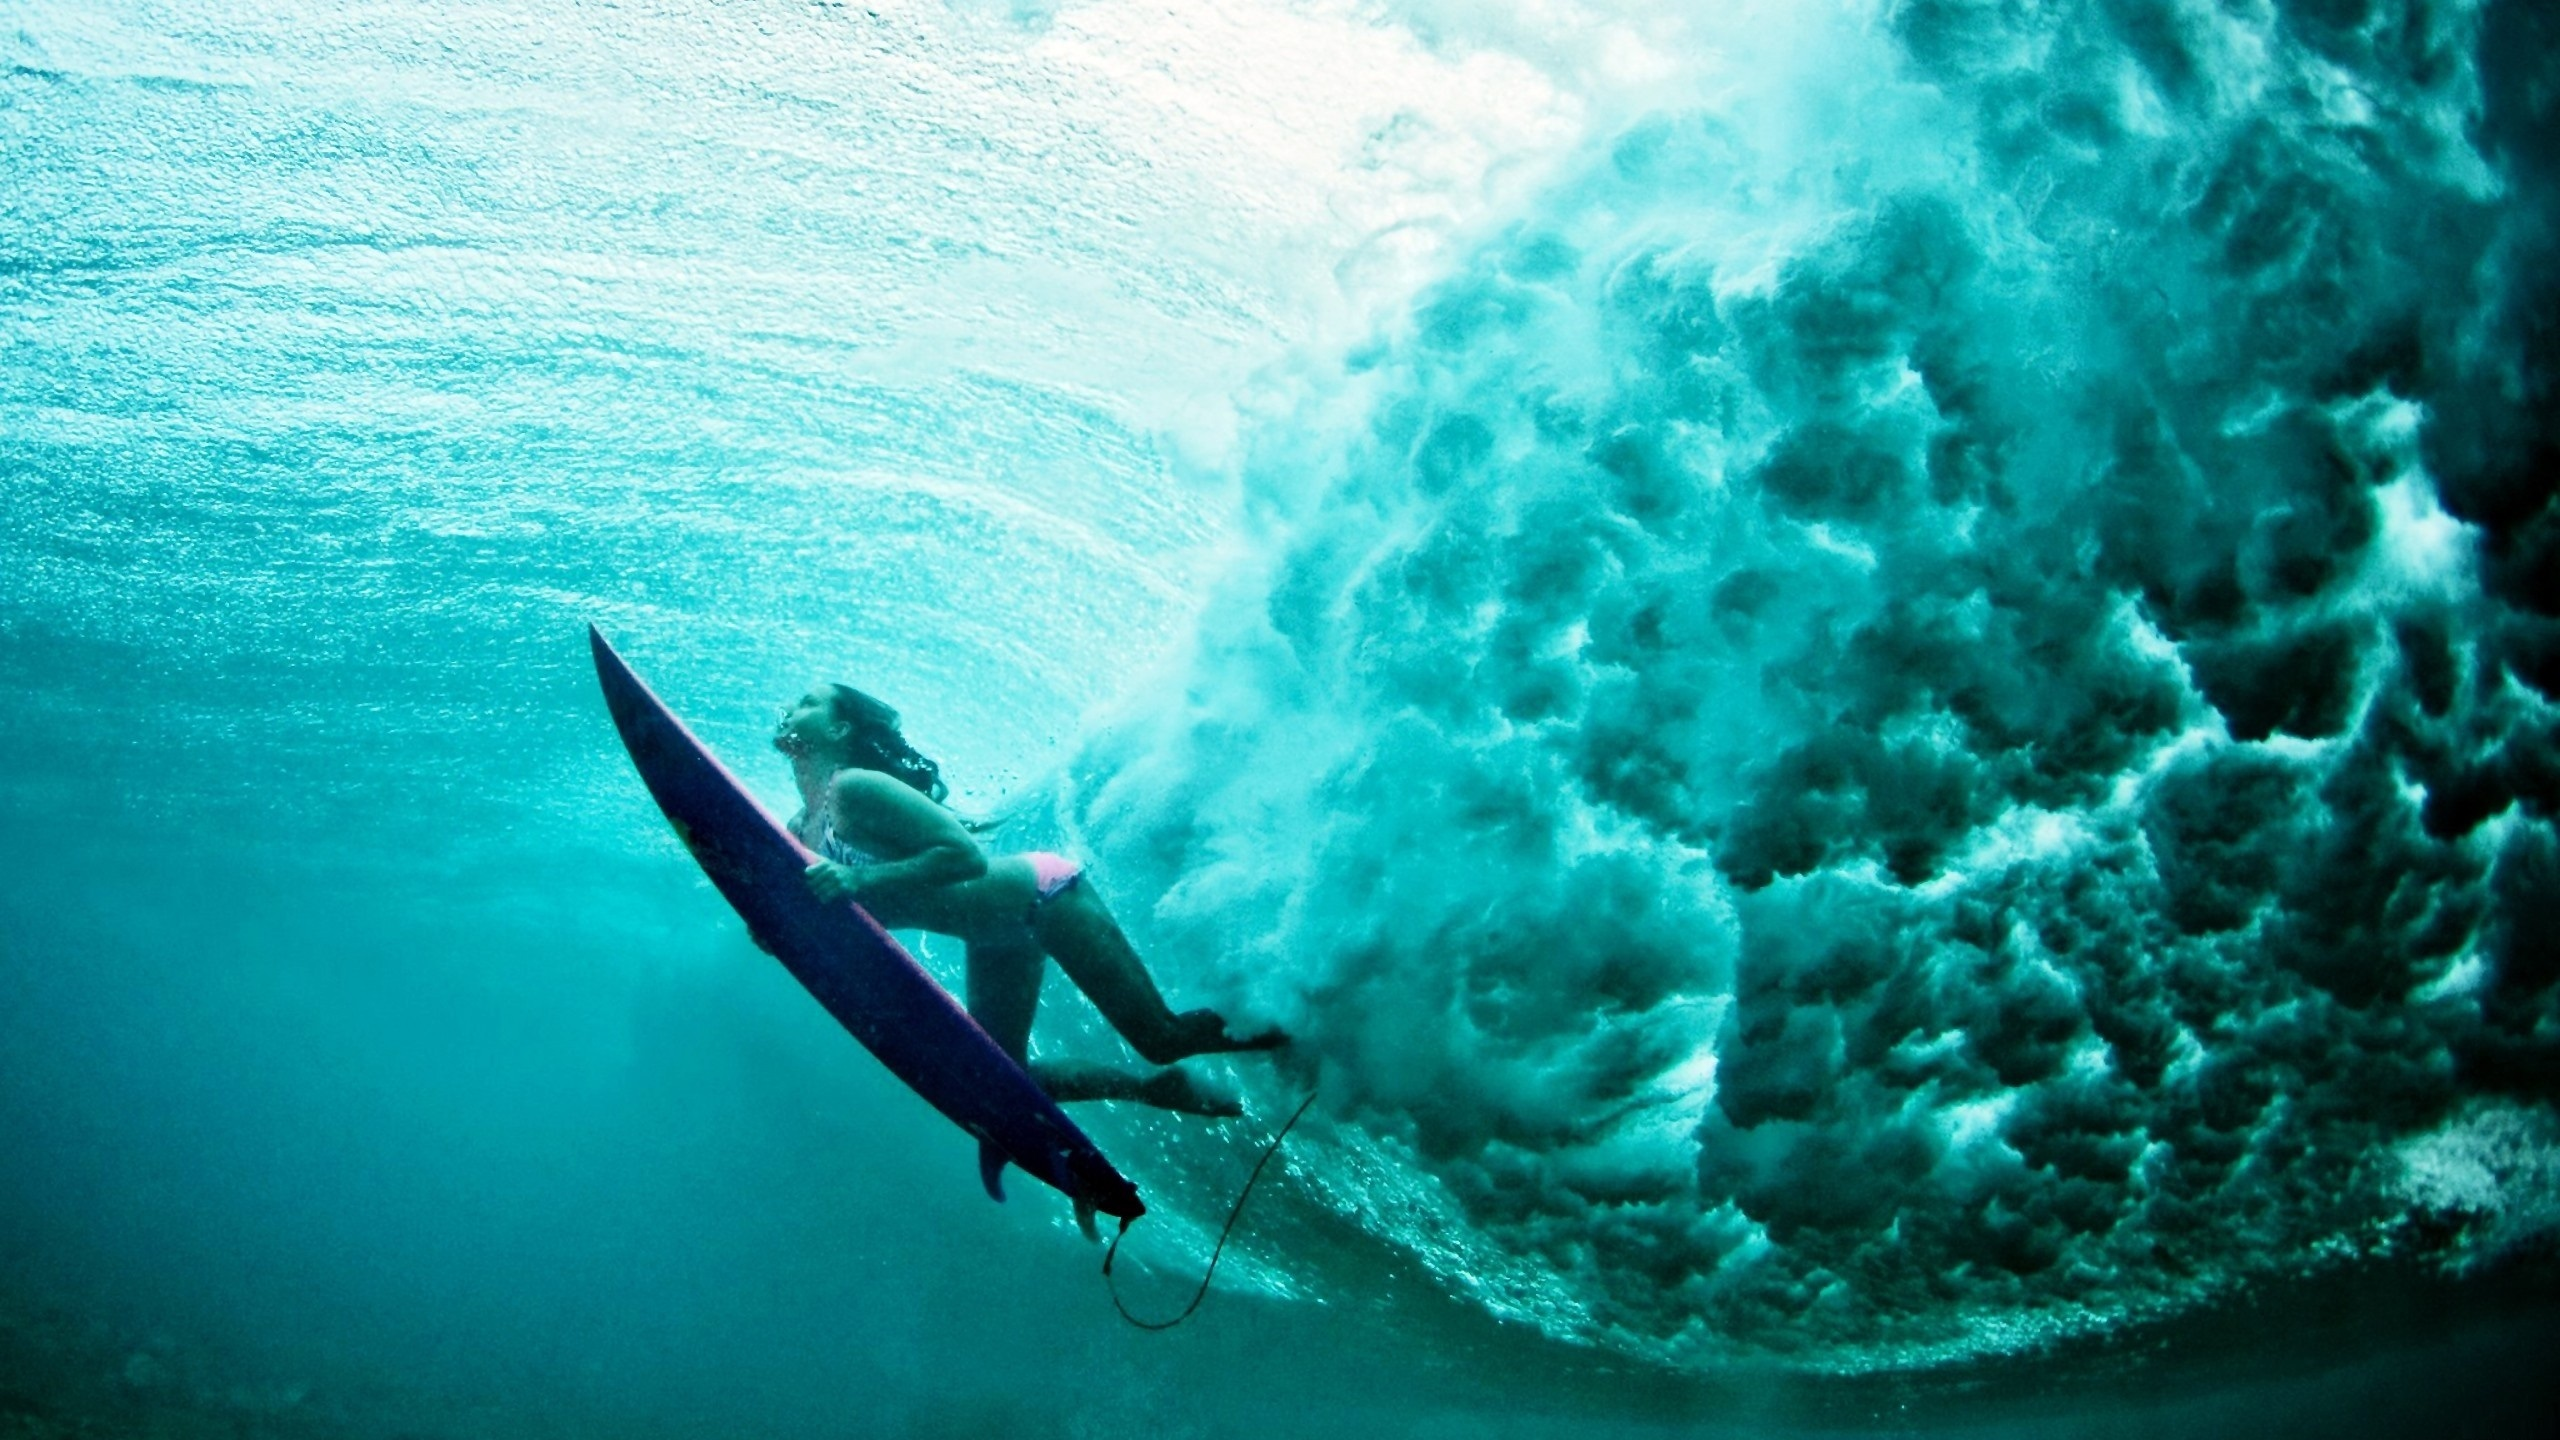 Surfer Girl Wallpaper Photos Underwater View Of The Wave Wallpaper Sports Faxo